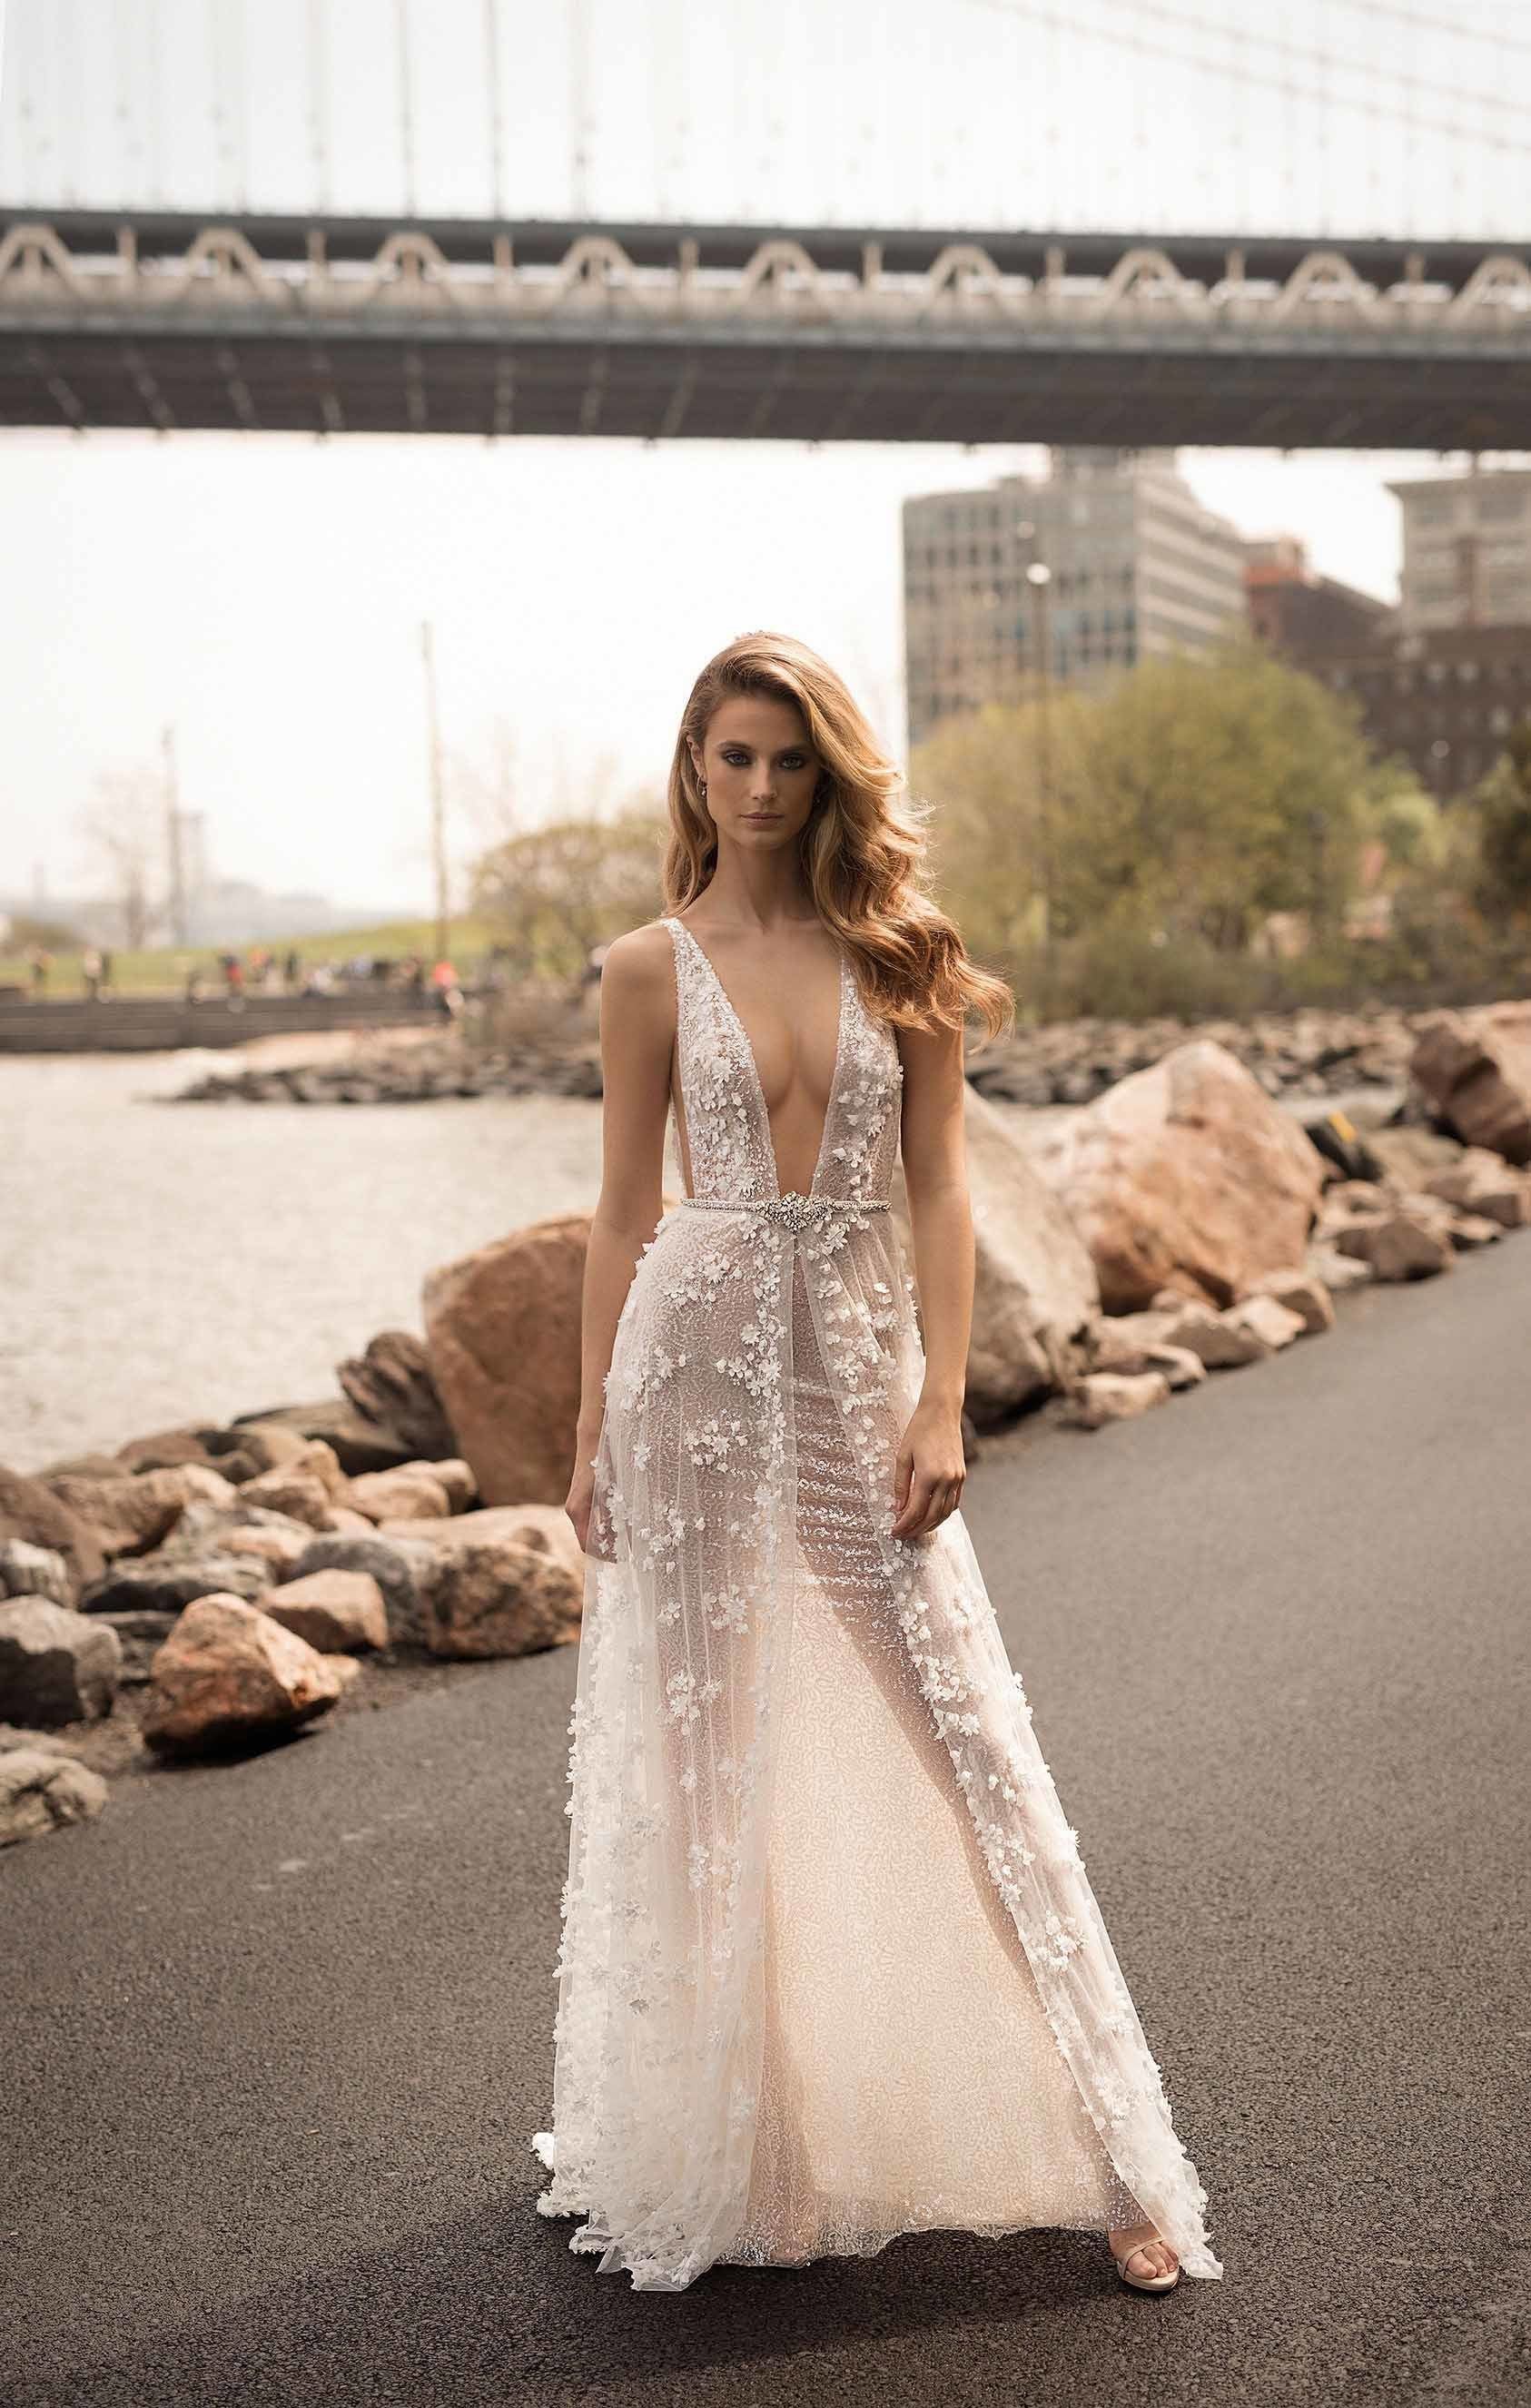 Lace-Bridal-Evening-Gowns Wedding-Dress